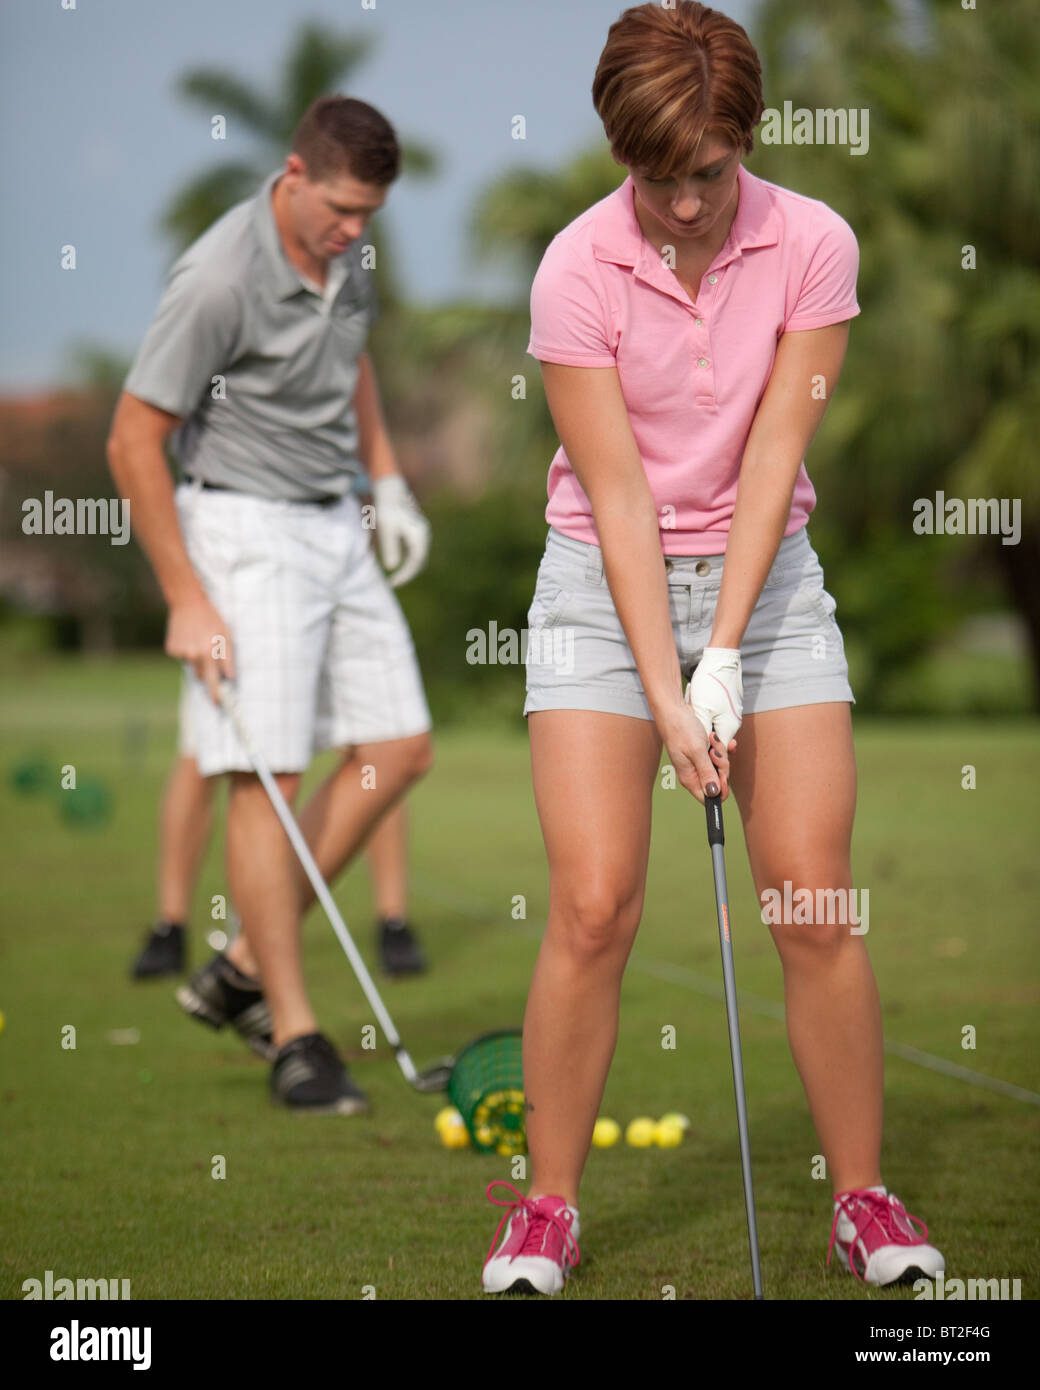 Female golfer on the driving range. A male golfer in the background. - Stock Image